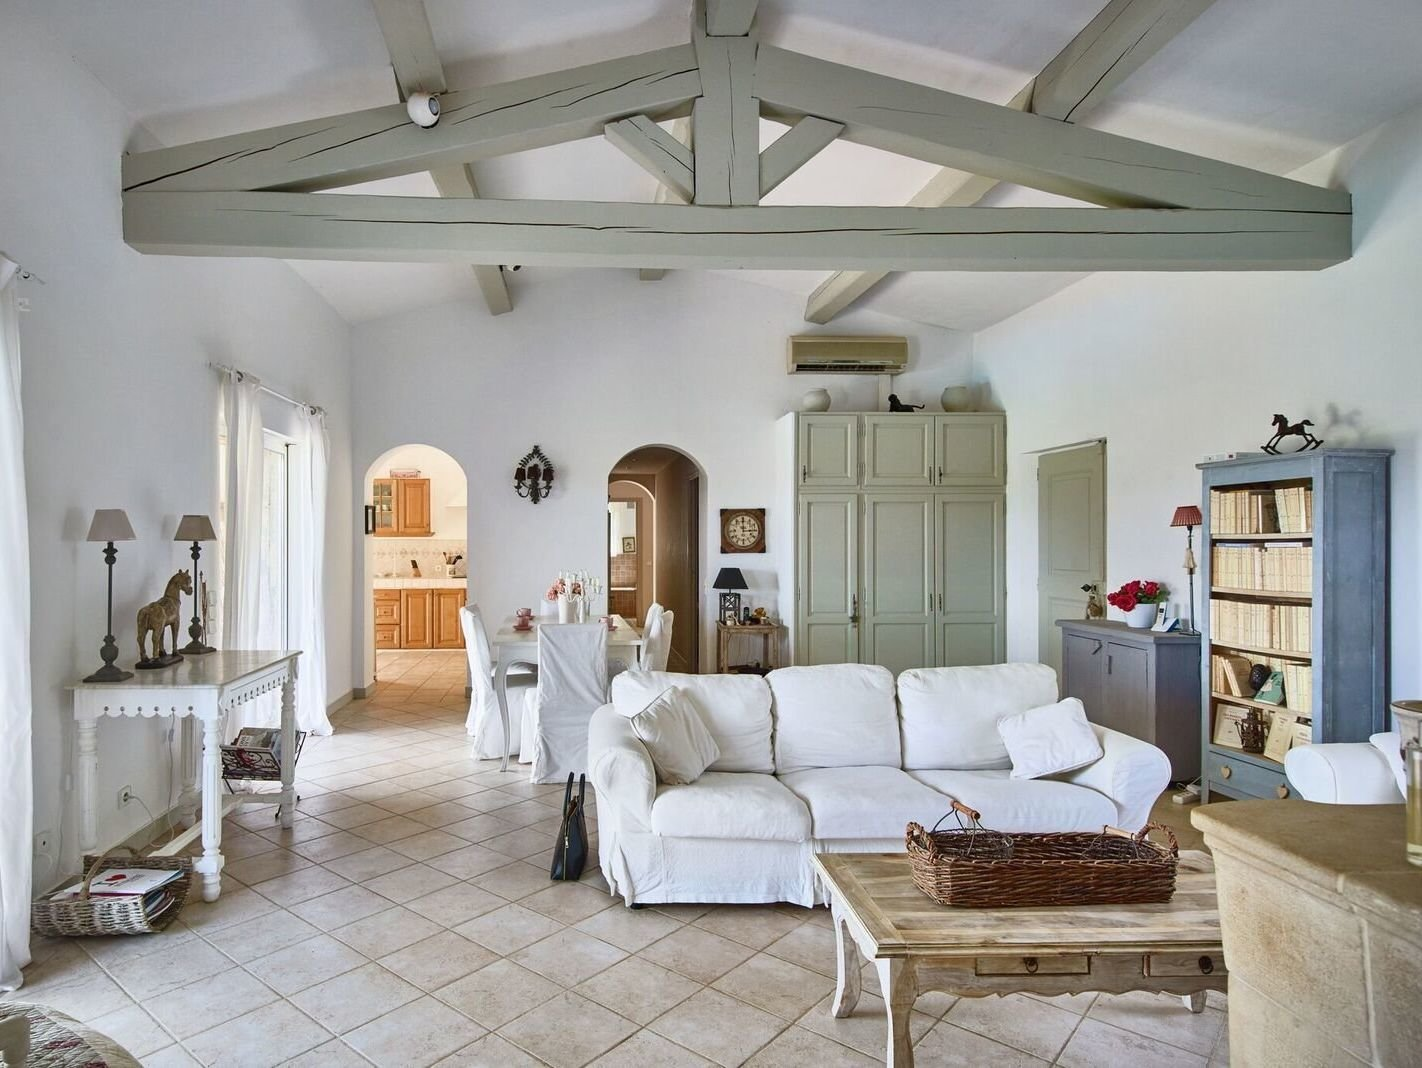 Close to Saint Tropez - Charming villa with pool and garden